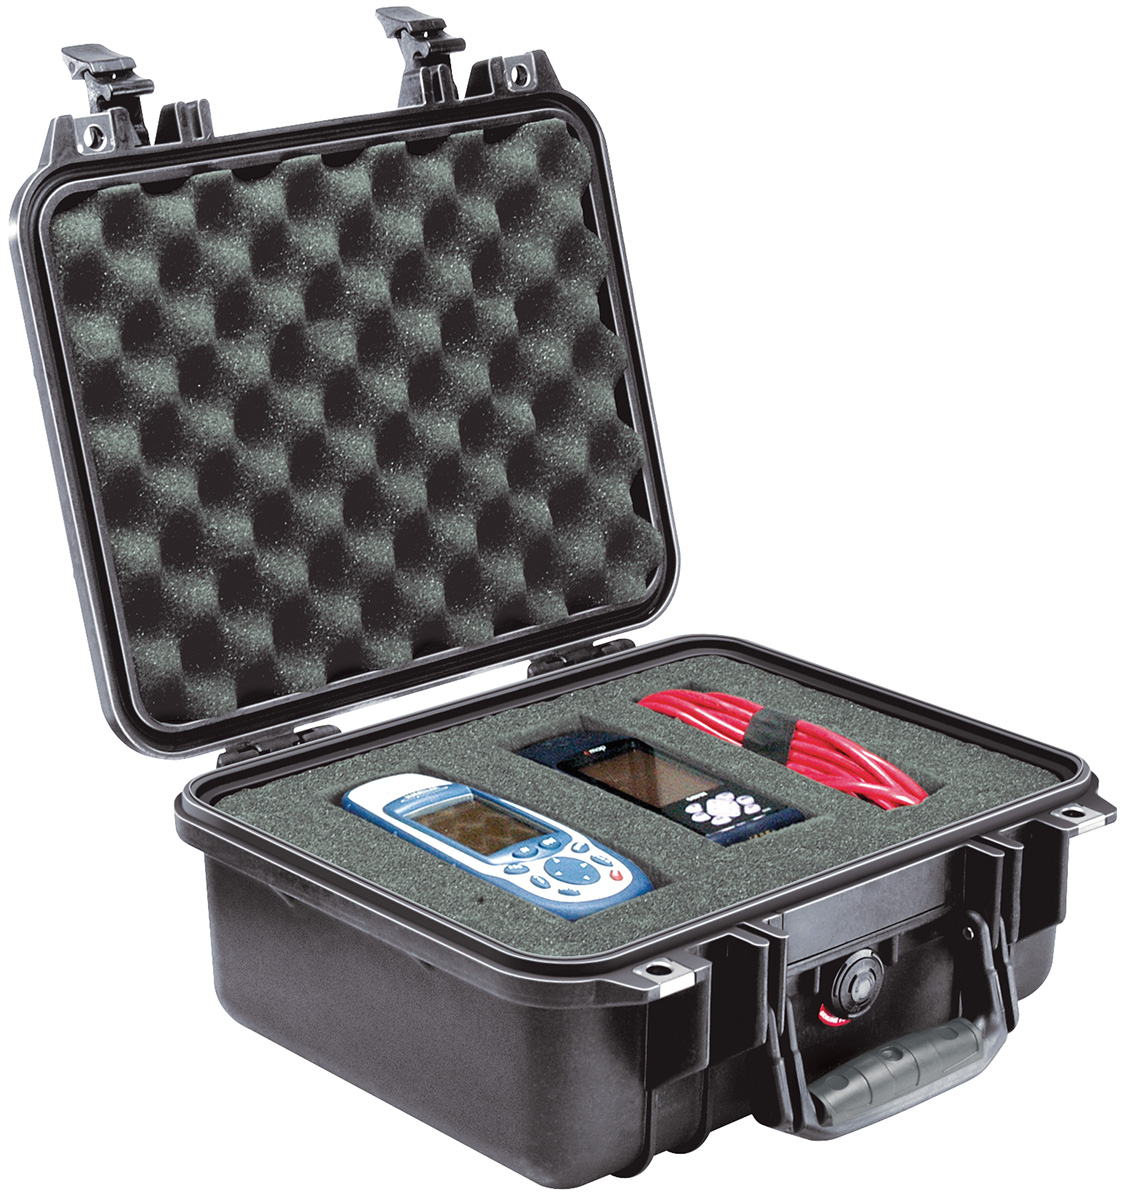 pelican peli products 1400 crush water proof electronics case